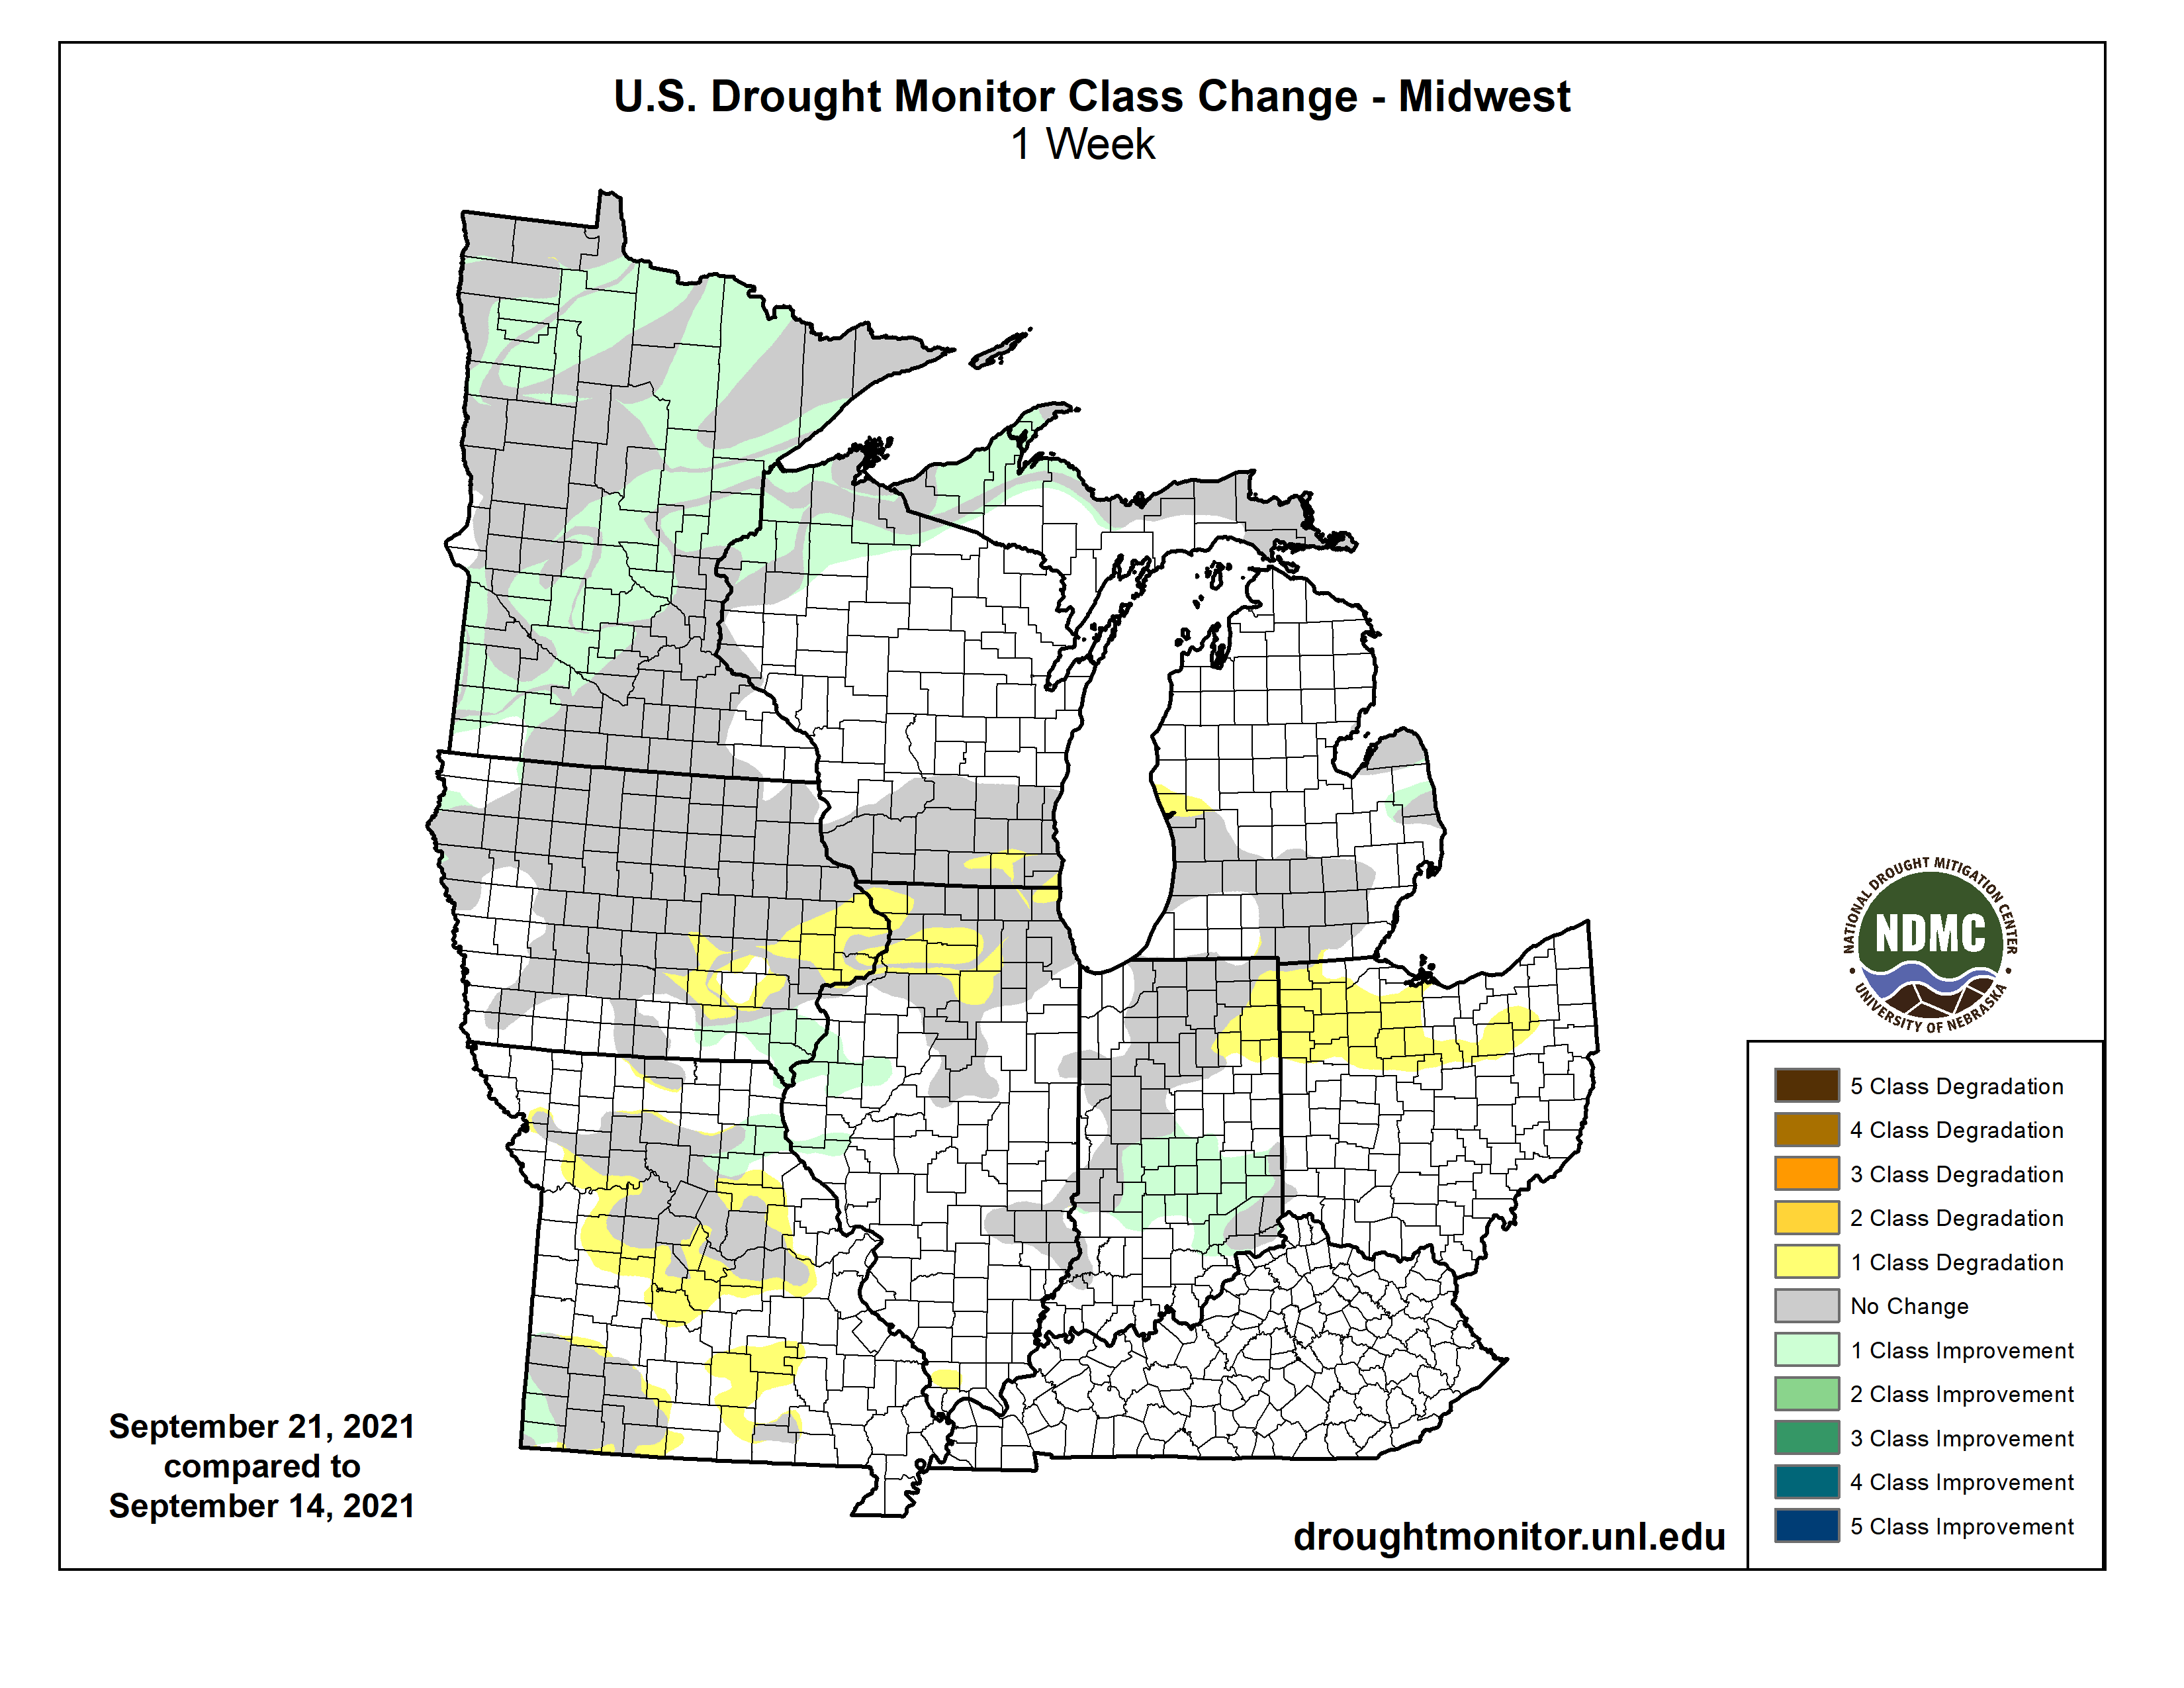 Drought class change for the Midwest